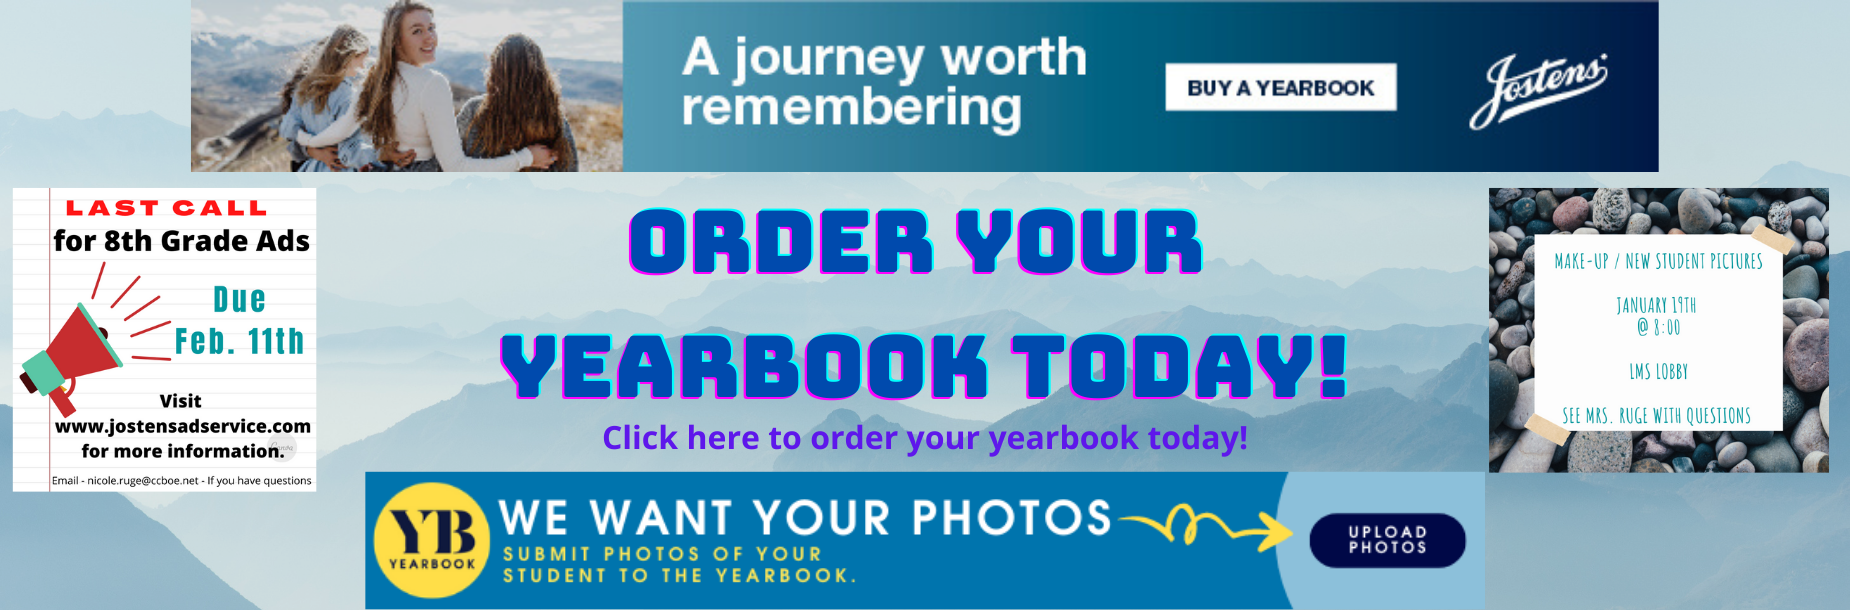 Order your yearbook today https://www.jostens.com/yearbooks/students-and-parents/about-yearbooks